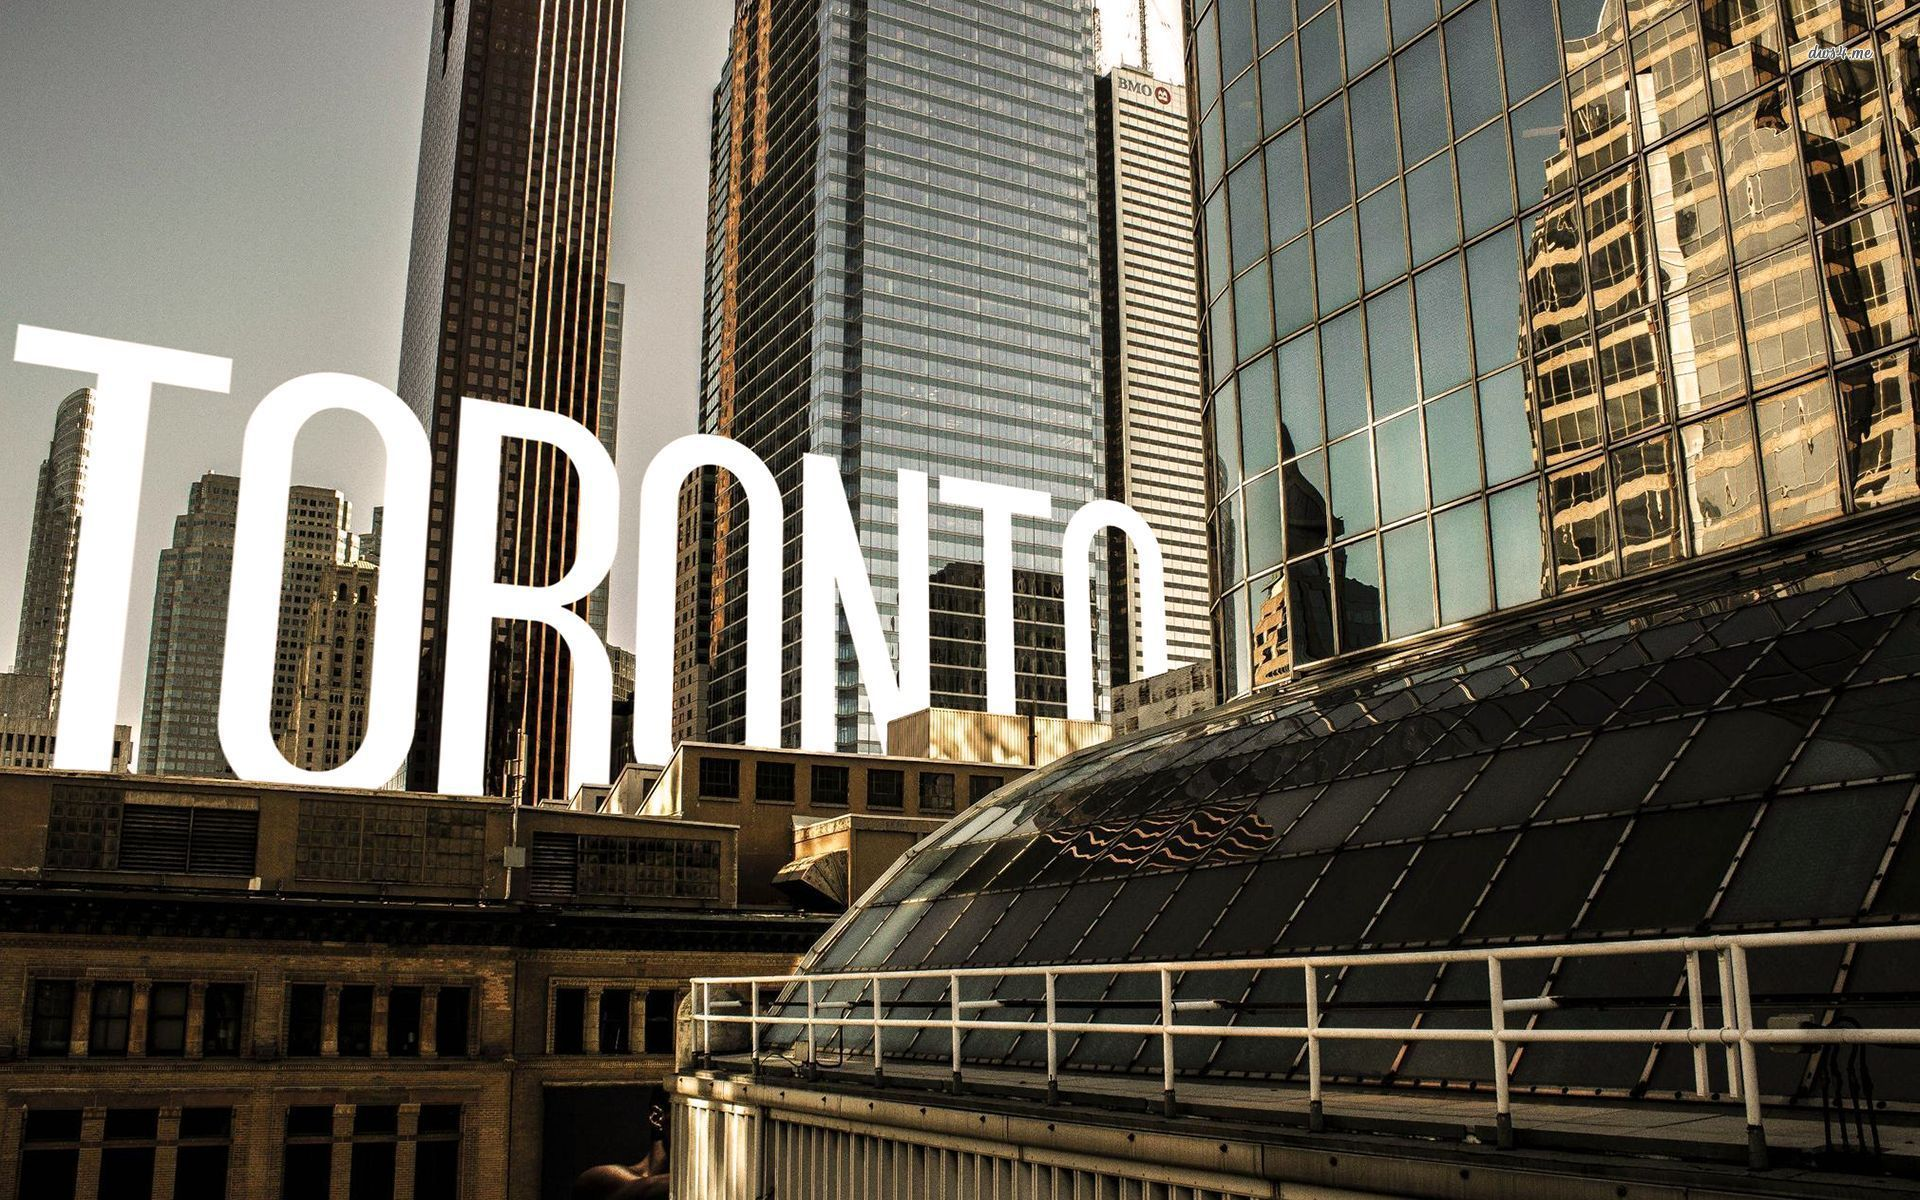 Toronto Wallpaper Canada Tourism Vacation Trips Travel Videos